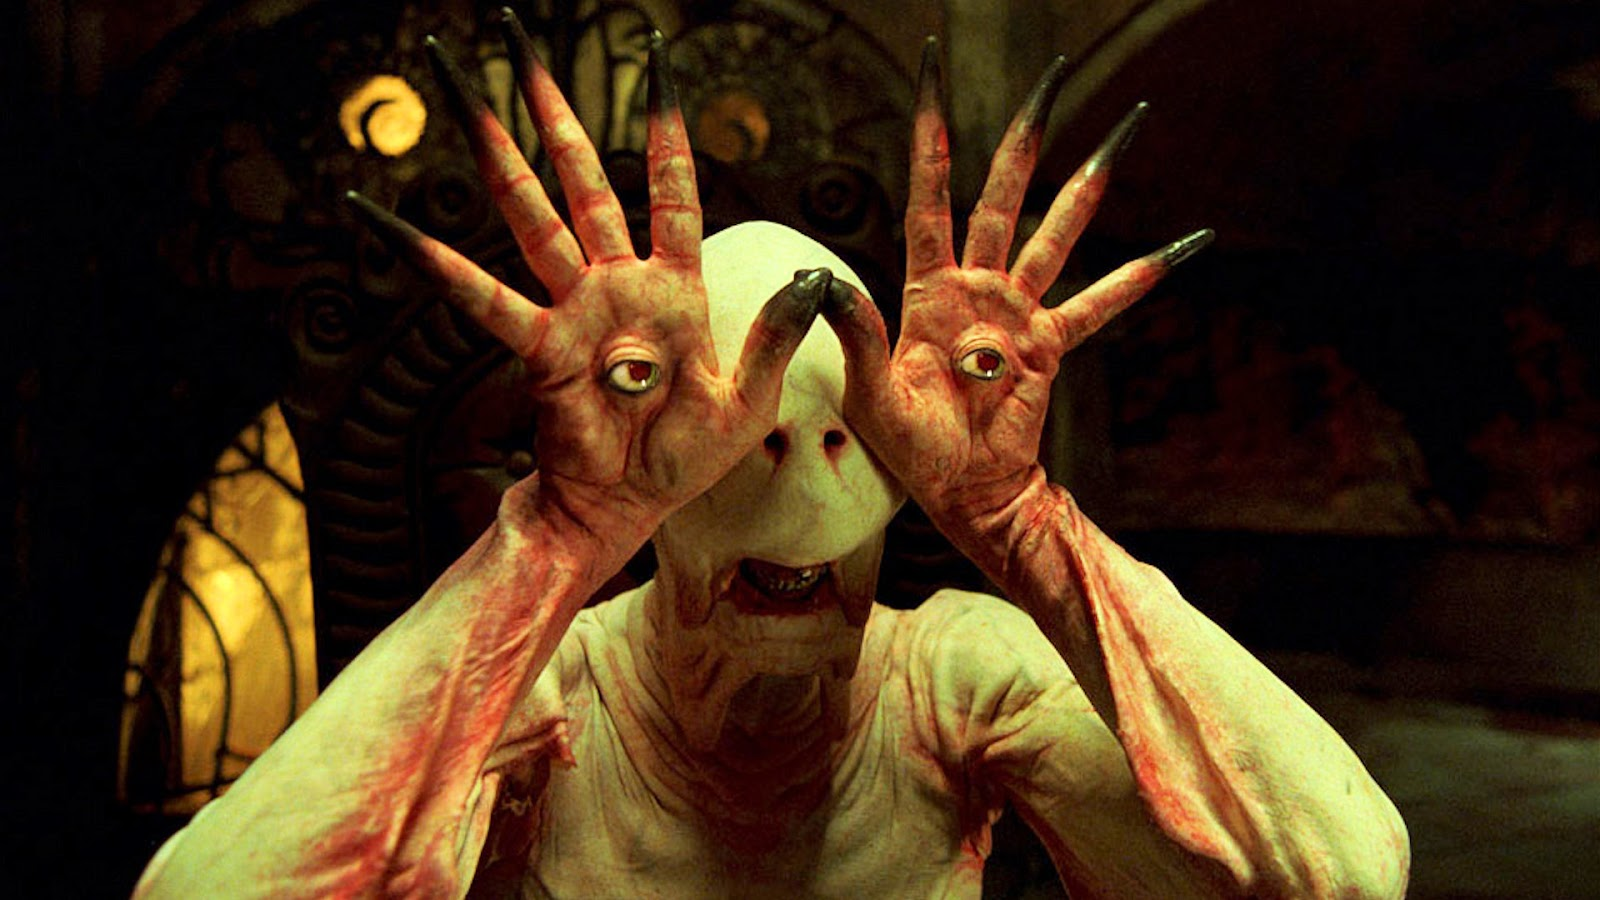 10. PAN'S LABYRINTH / EL LABERINTO DEL FAUNO  (Guillermo del Toro, Mexico/Spain, 2006)